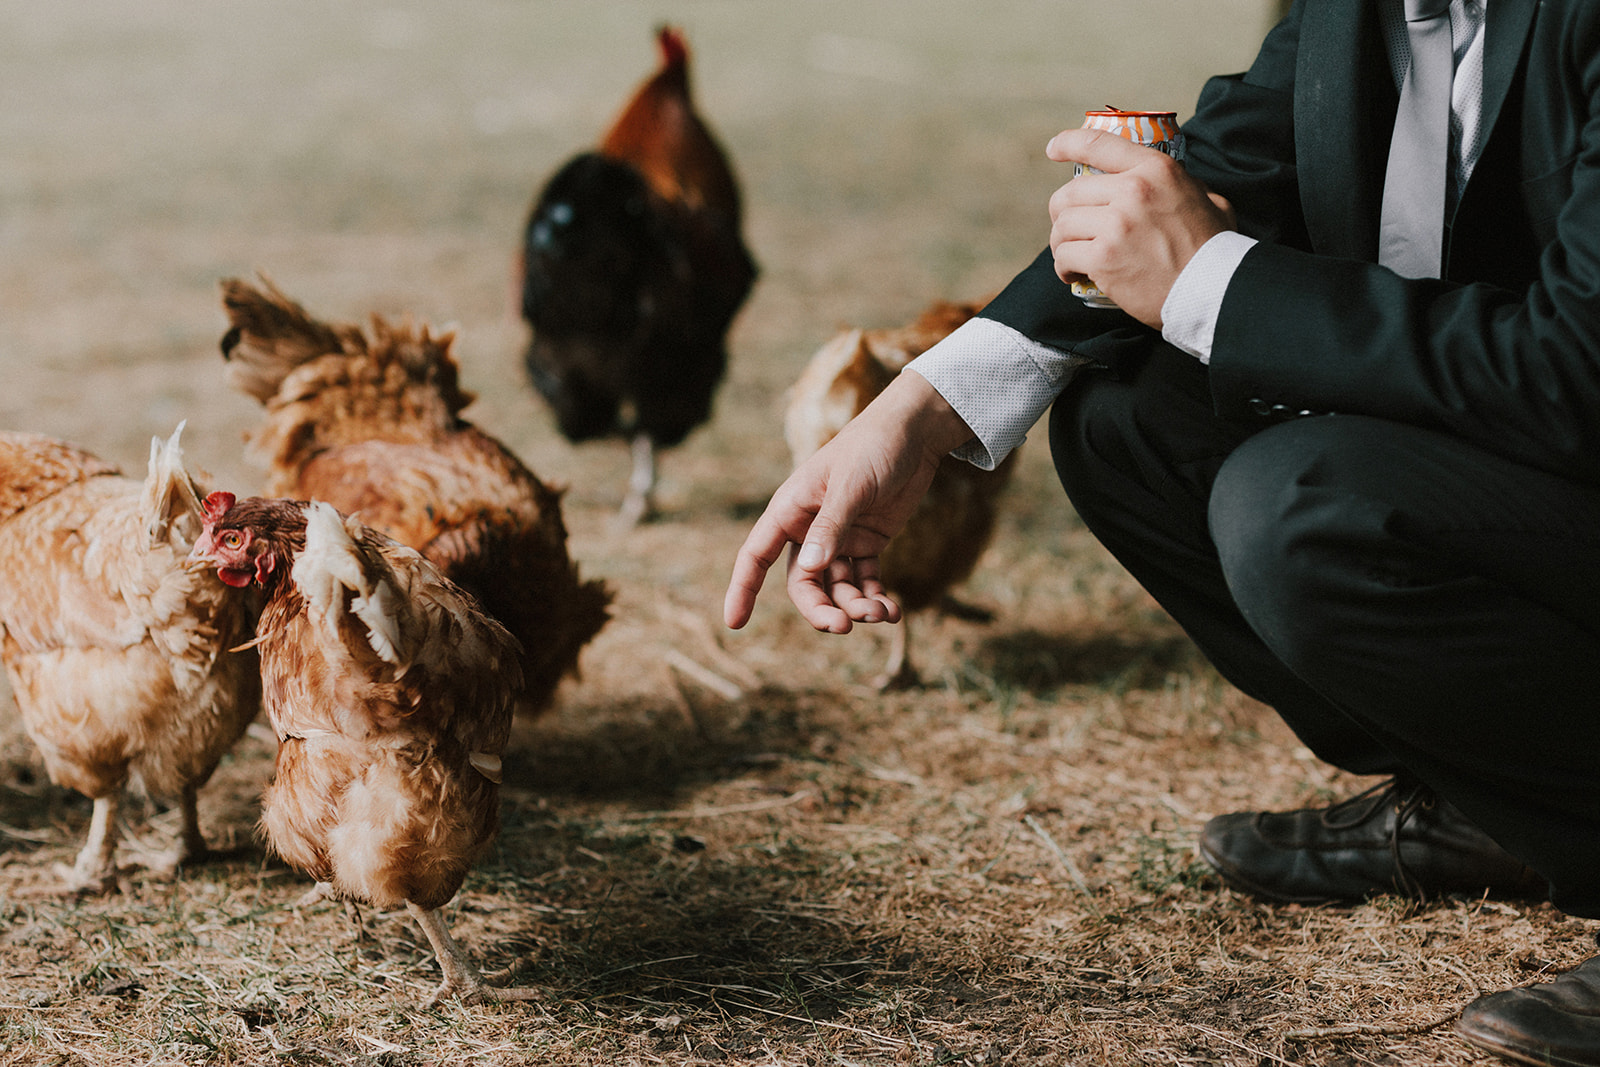 Chickens at wedding